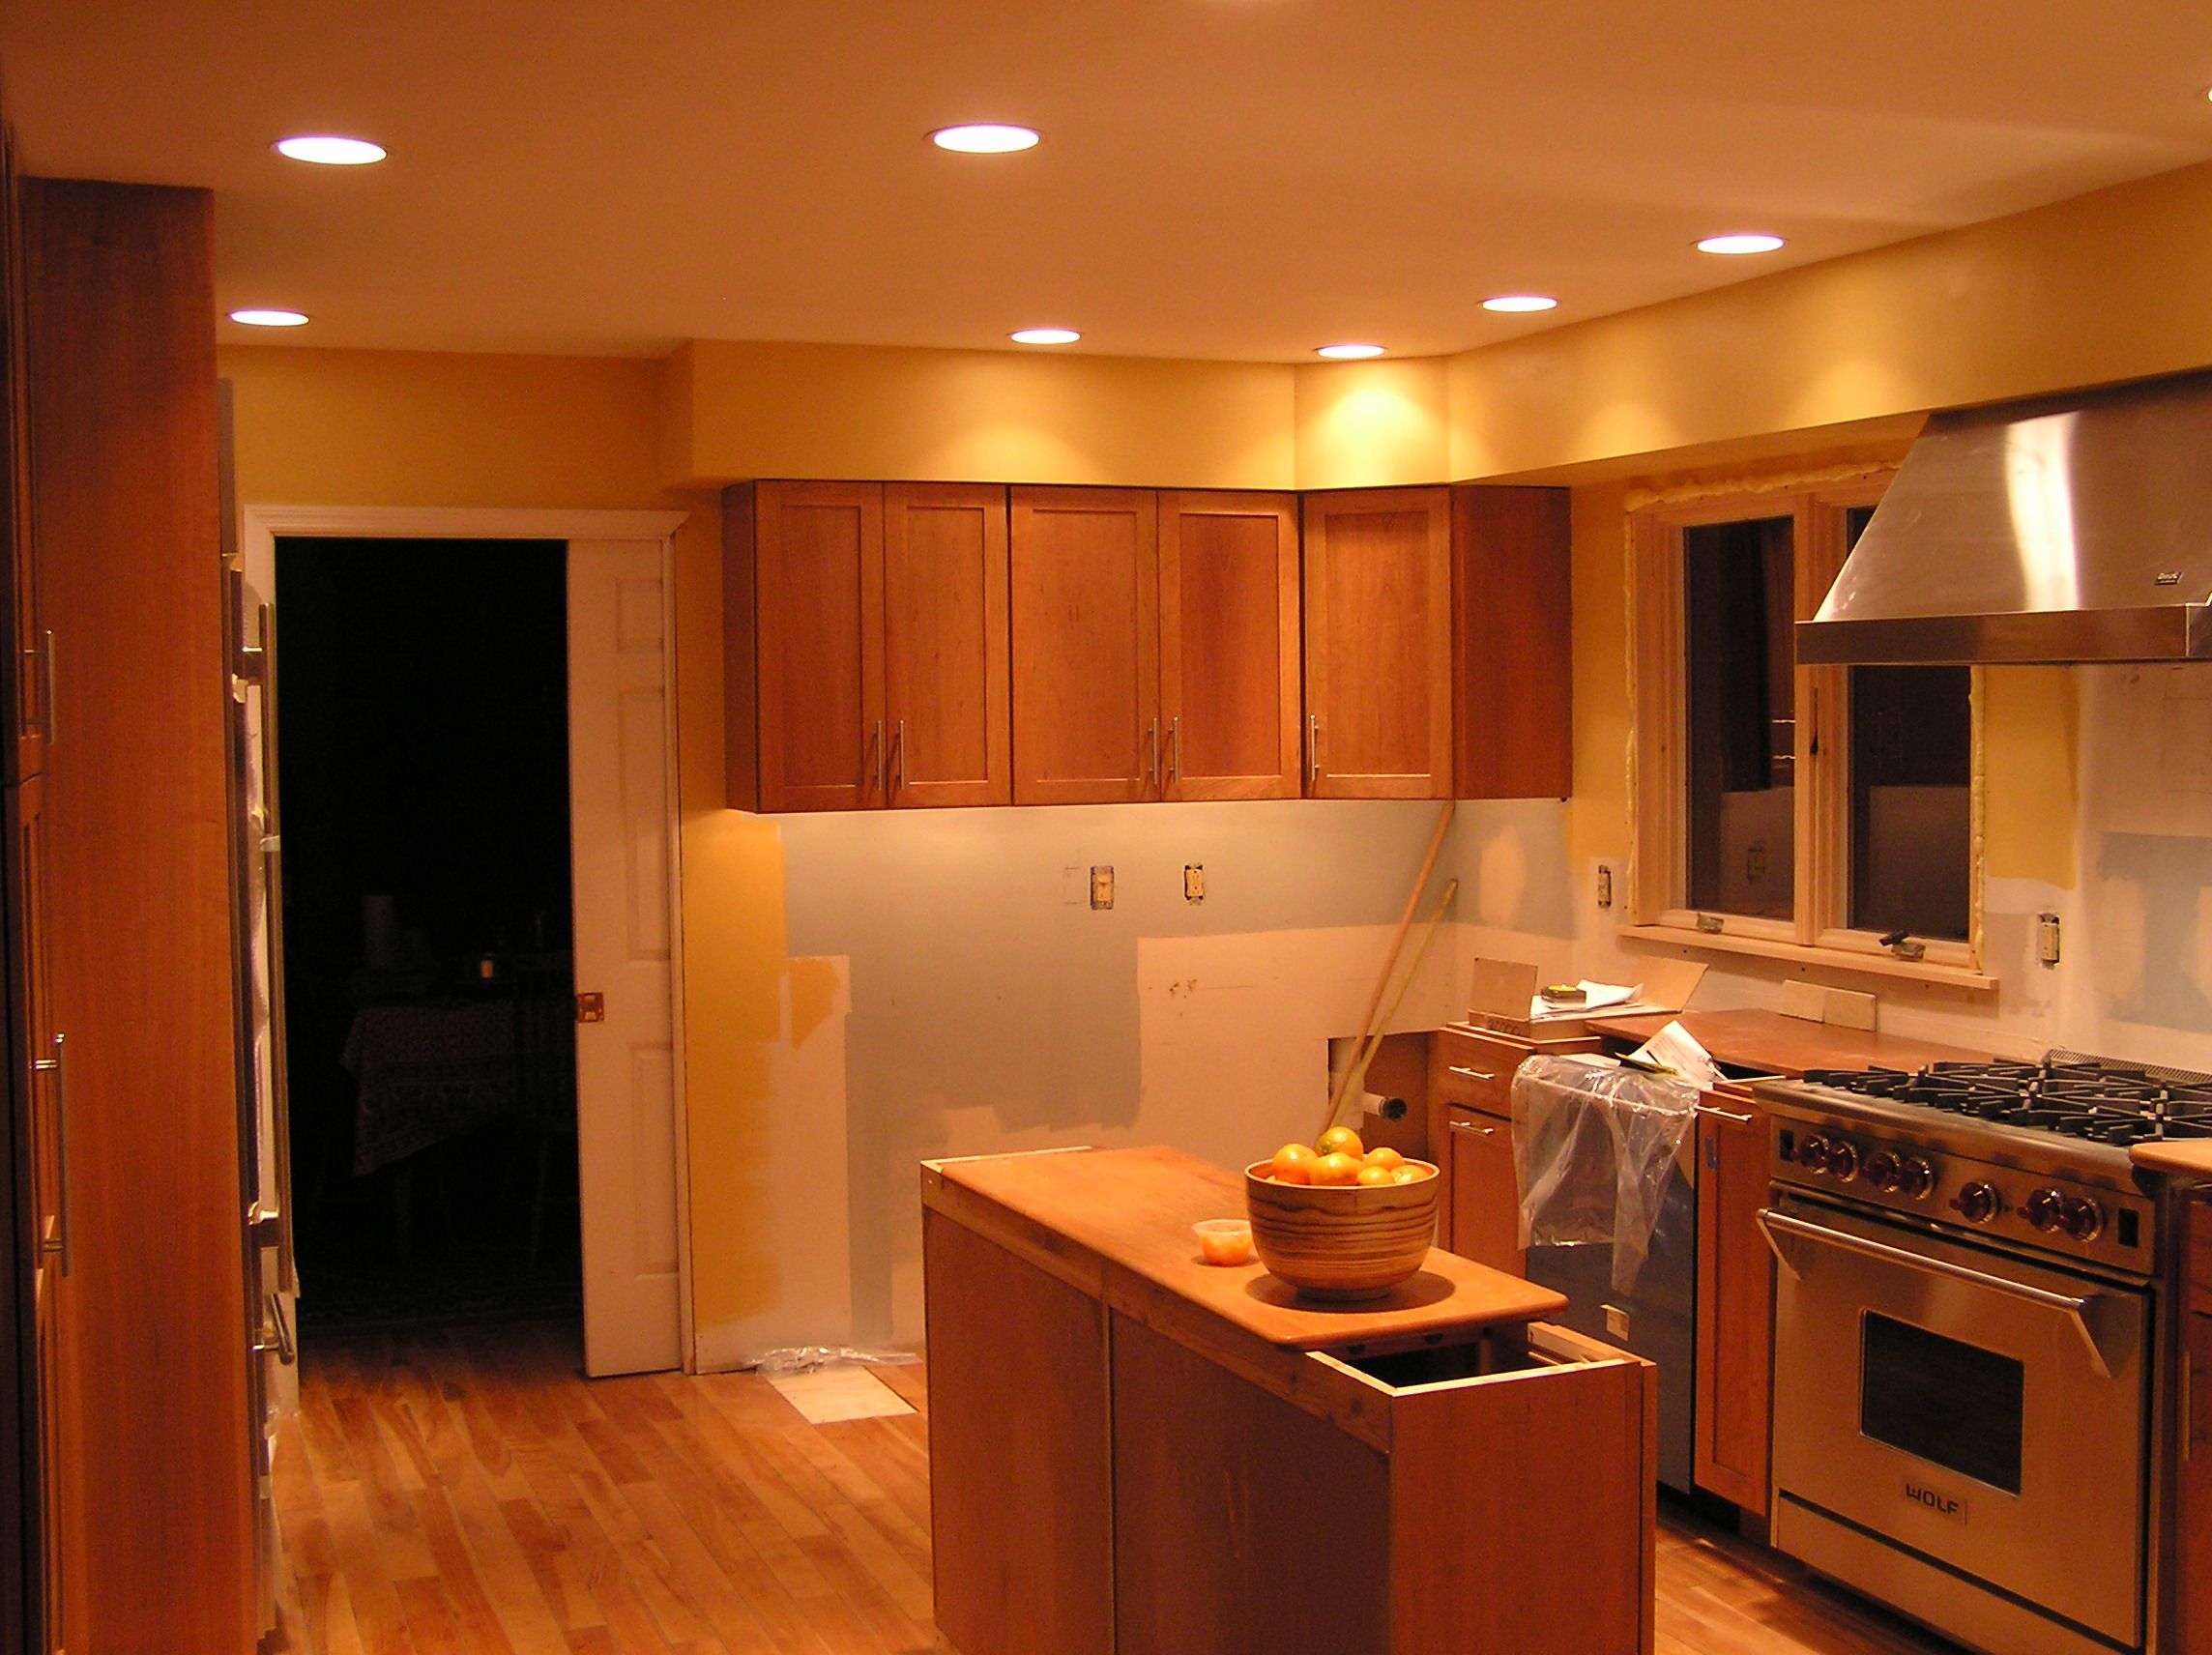 Trim Under Cabinets Thompson Kitchen January 2005